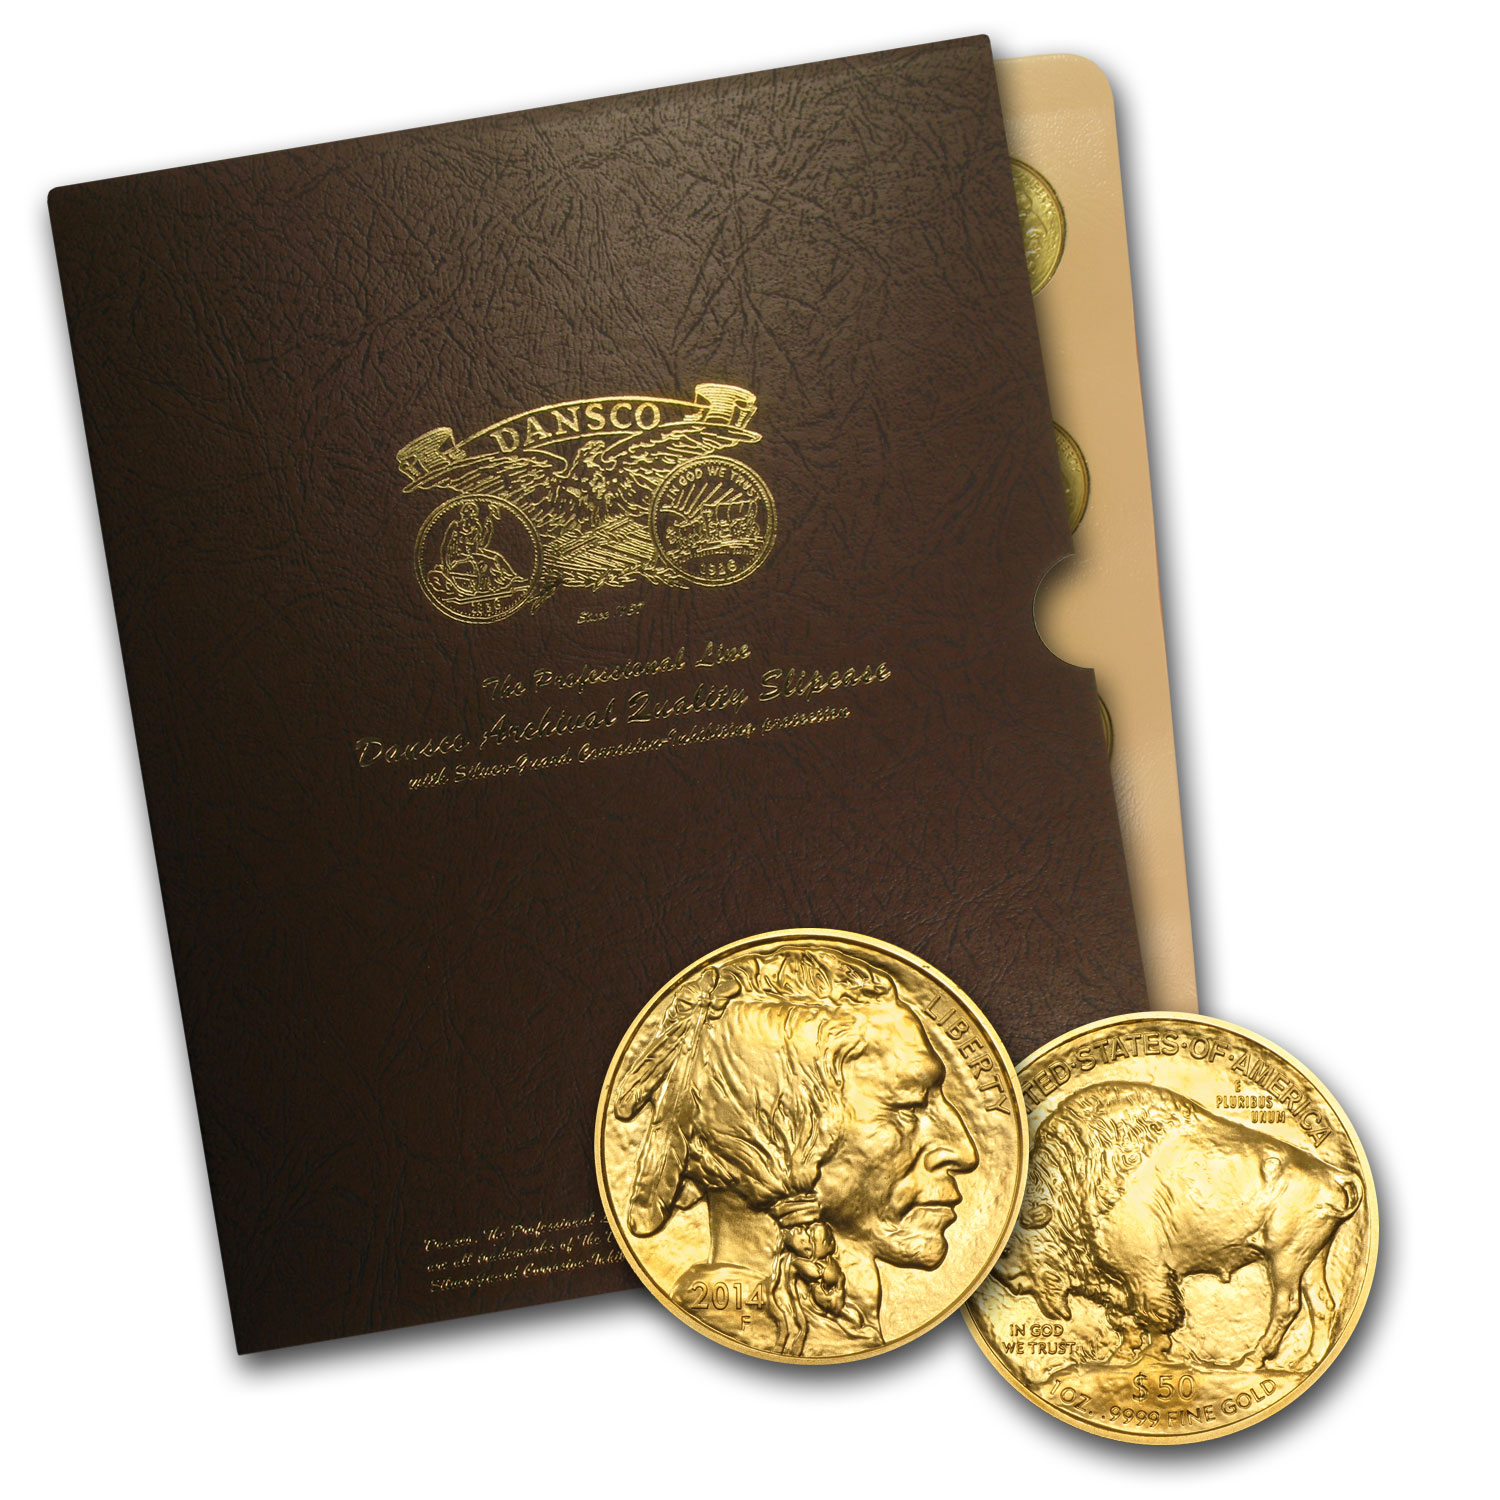 2006-2015 10 Coin 1 oz Gold Buffalo Set BU Dansco Album